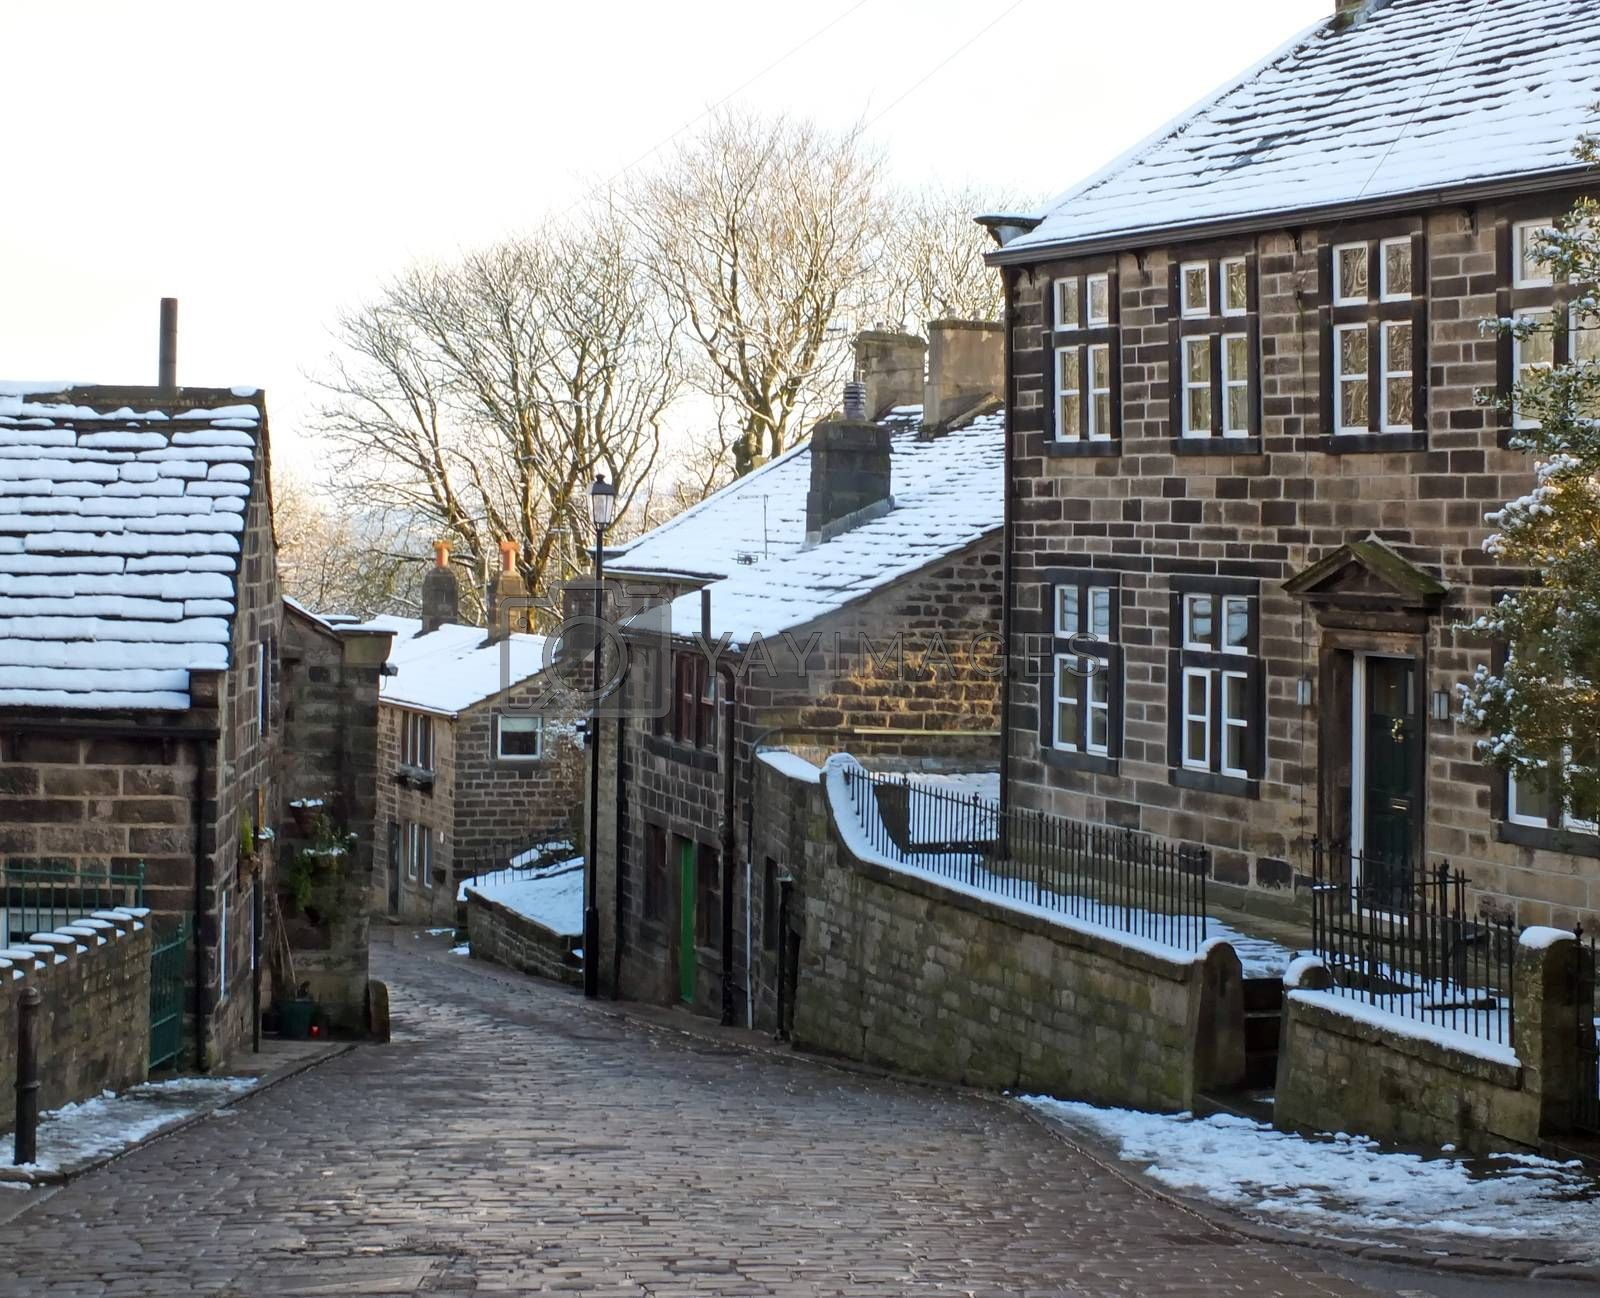 A scenic view of the main street in the village of heptonstall in west yorkshire with snow covering the old stone houses and pennine scenery visible in the background by Philip Openshaw